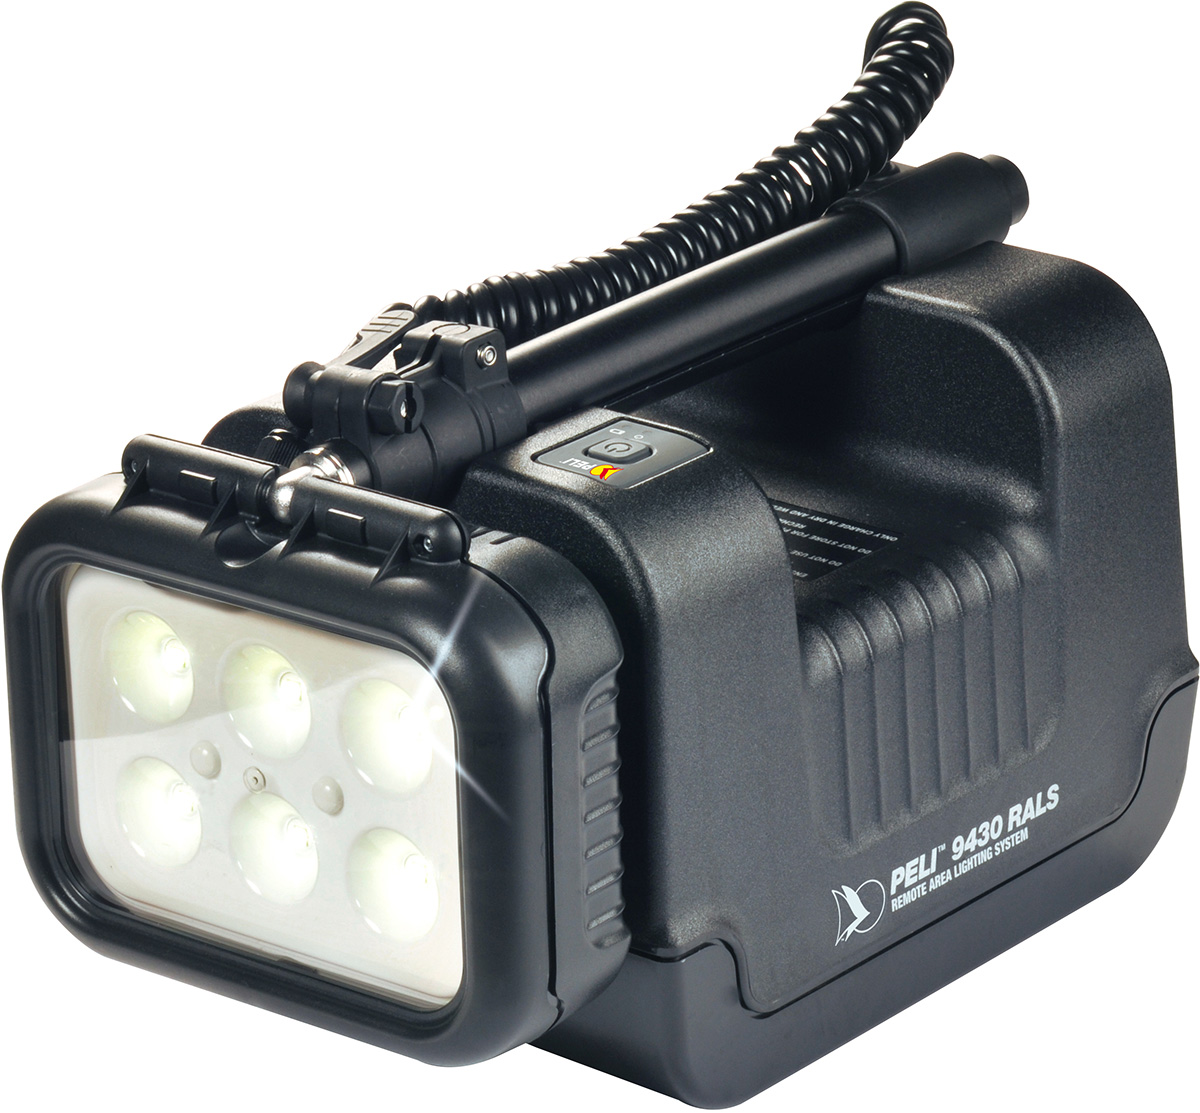 peli 9430 rechargeable portable led spot light